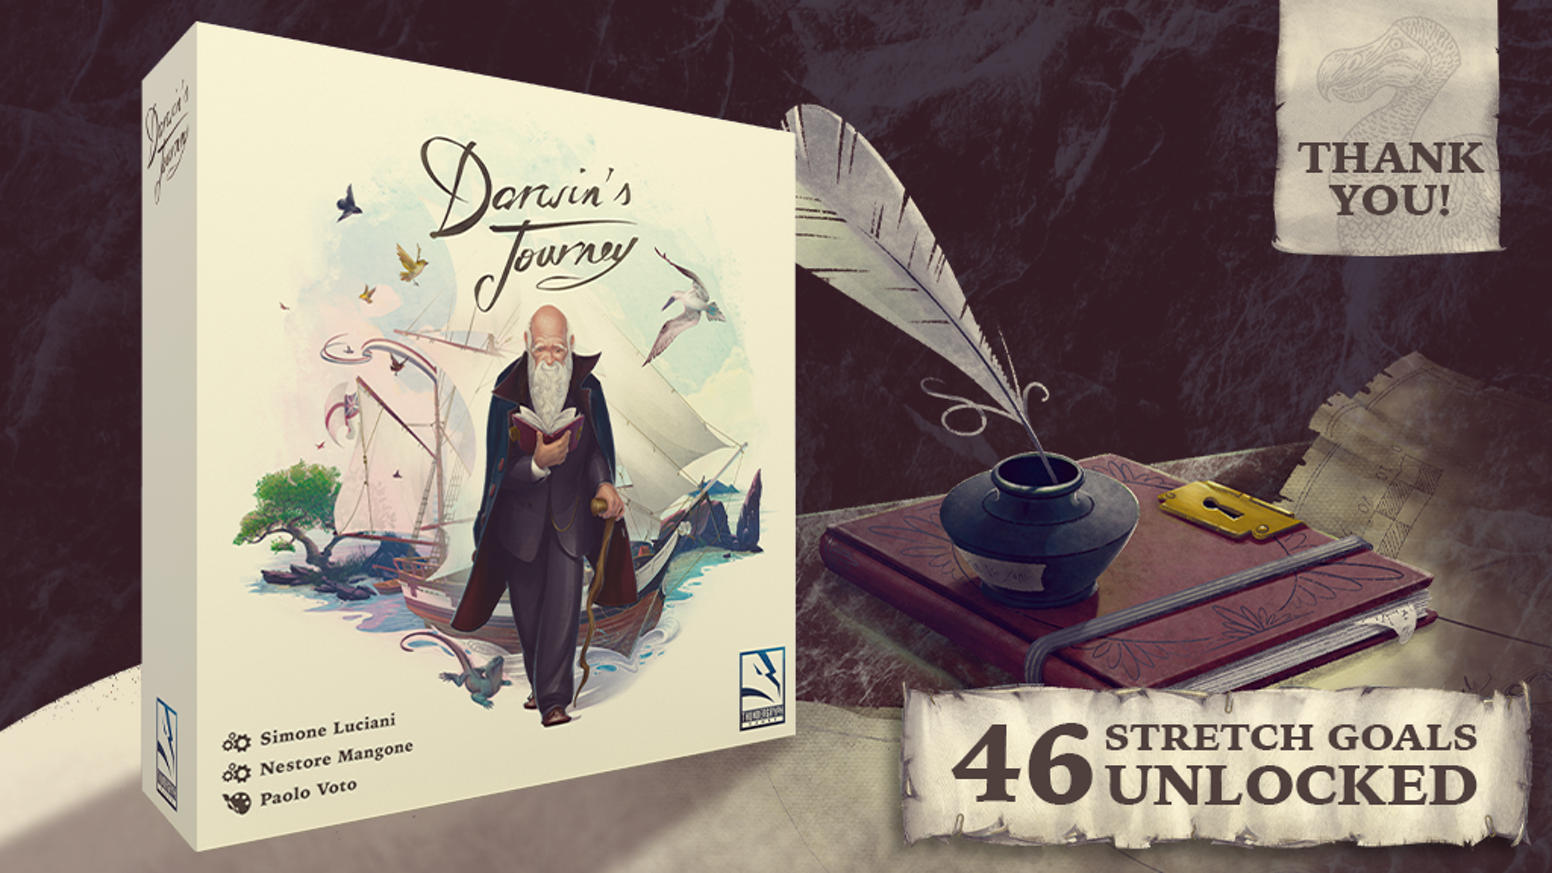 Retracing Darwin's journey to the Galapagos in an exciting Worker Placement euro game by Simone Luciani and Nestore Mangone.